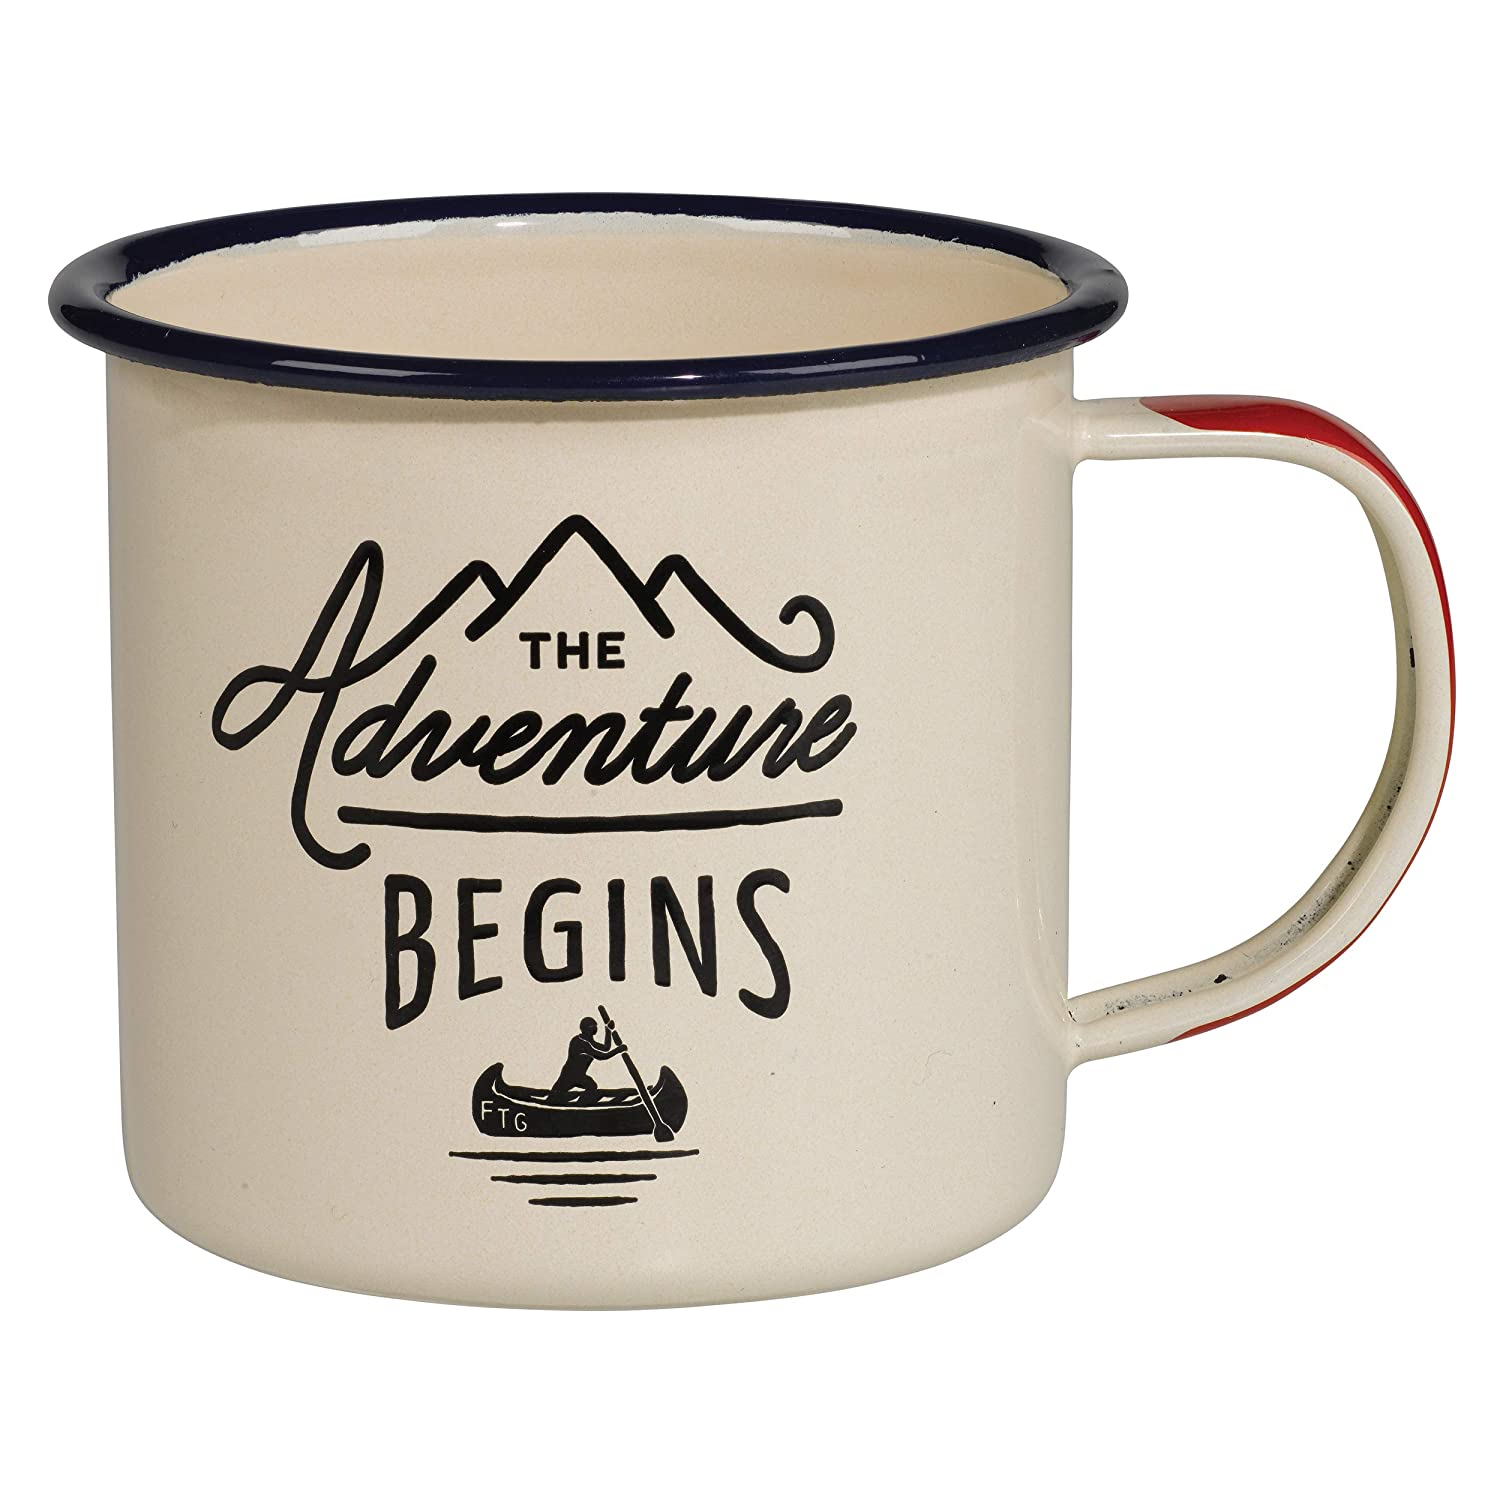 Gentlemen's Hardware Adventure Enamel Camping Coffee Mug, Cream (12 oz) Wild and Wolf Inc. AGEN025